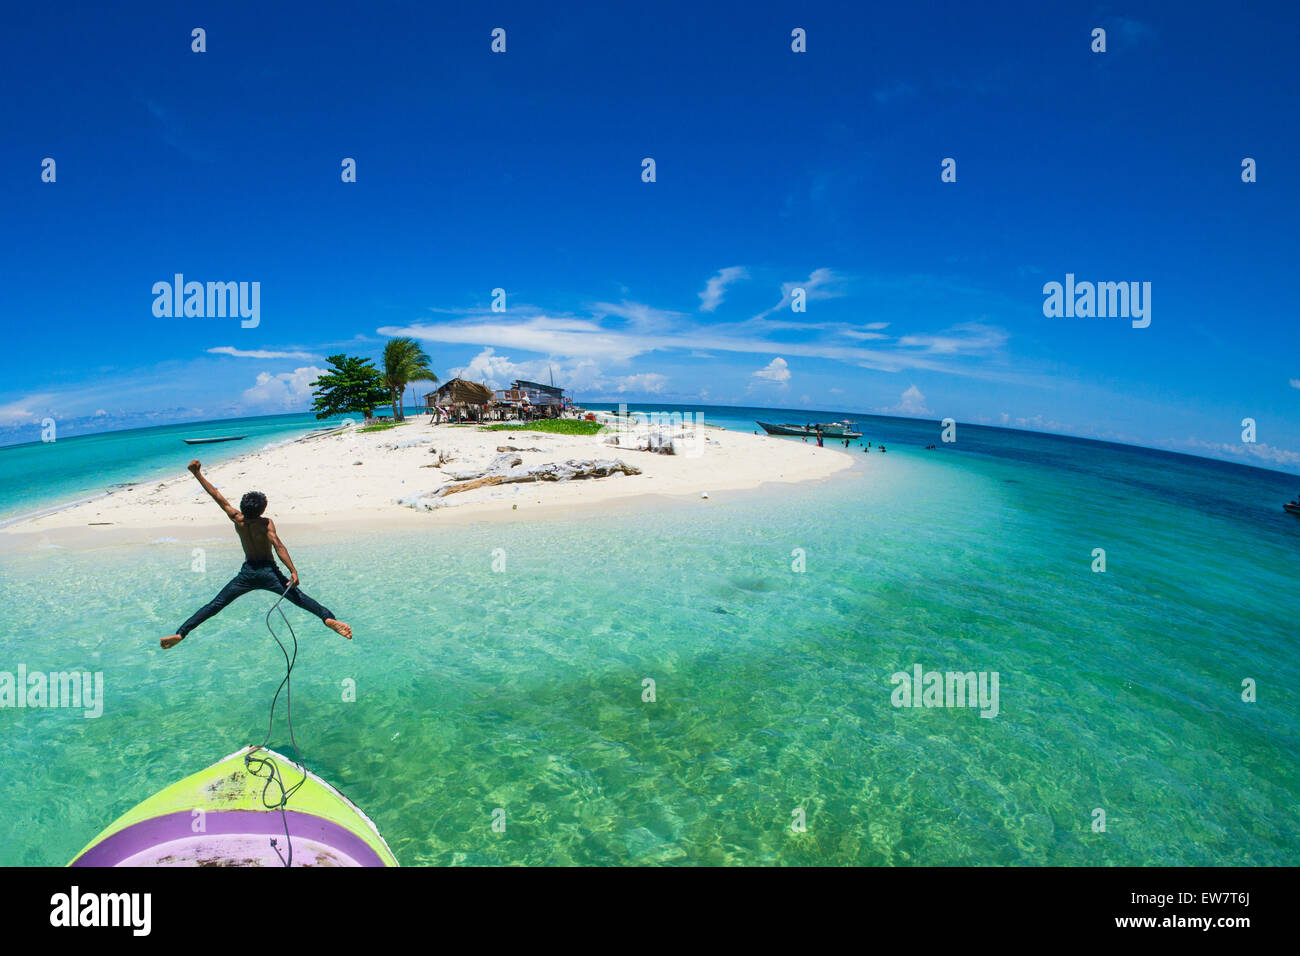 Teenage boy jumping off the front of a boat into the sea, Semporna, Sabah, Malaysia - Stock Image